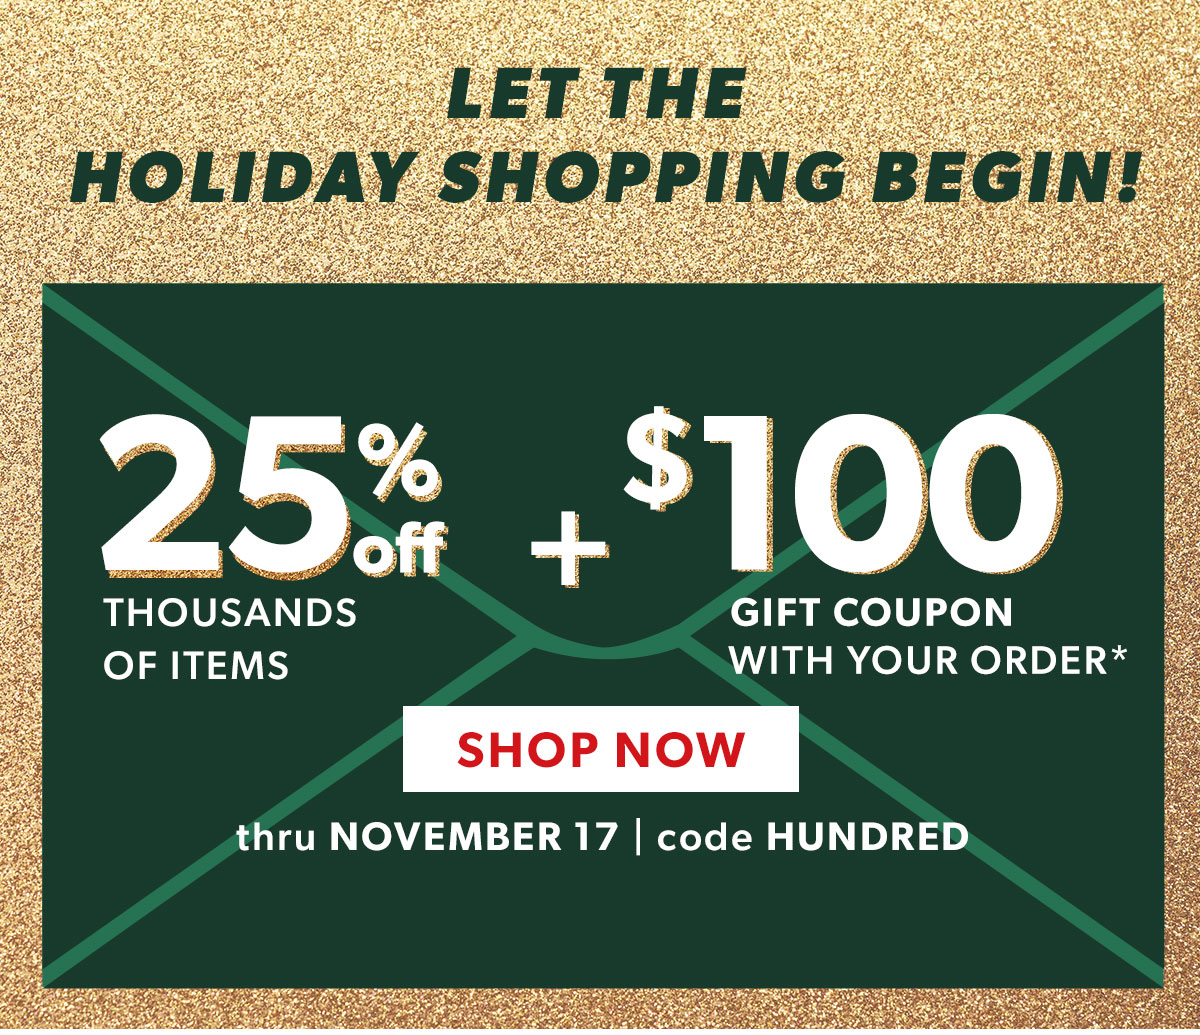 25% Off Thousands of Items + $100 Gift Coupon With Your Order. Shop Now